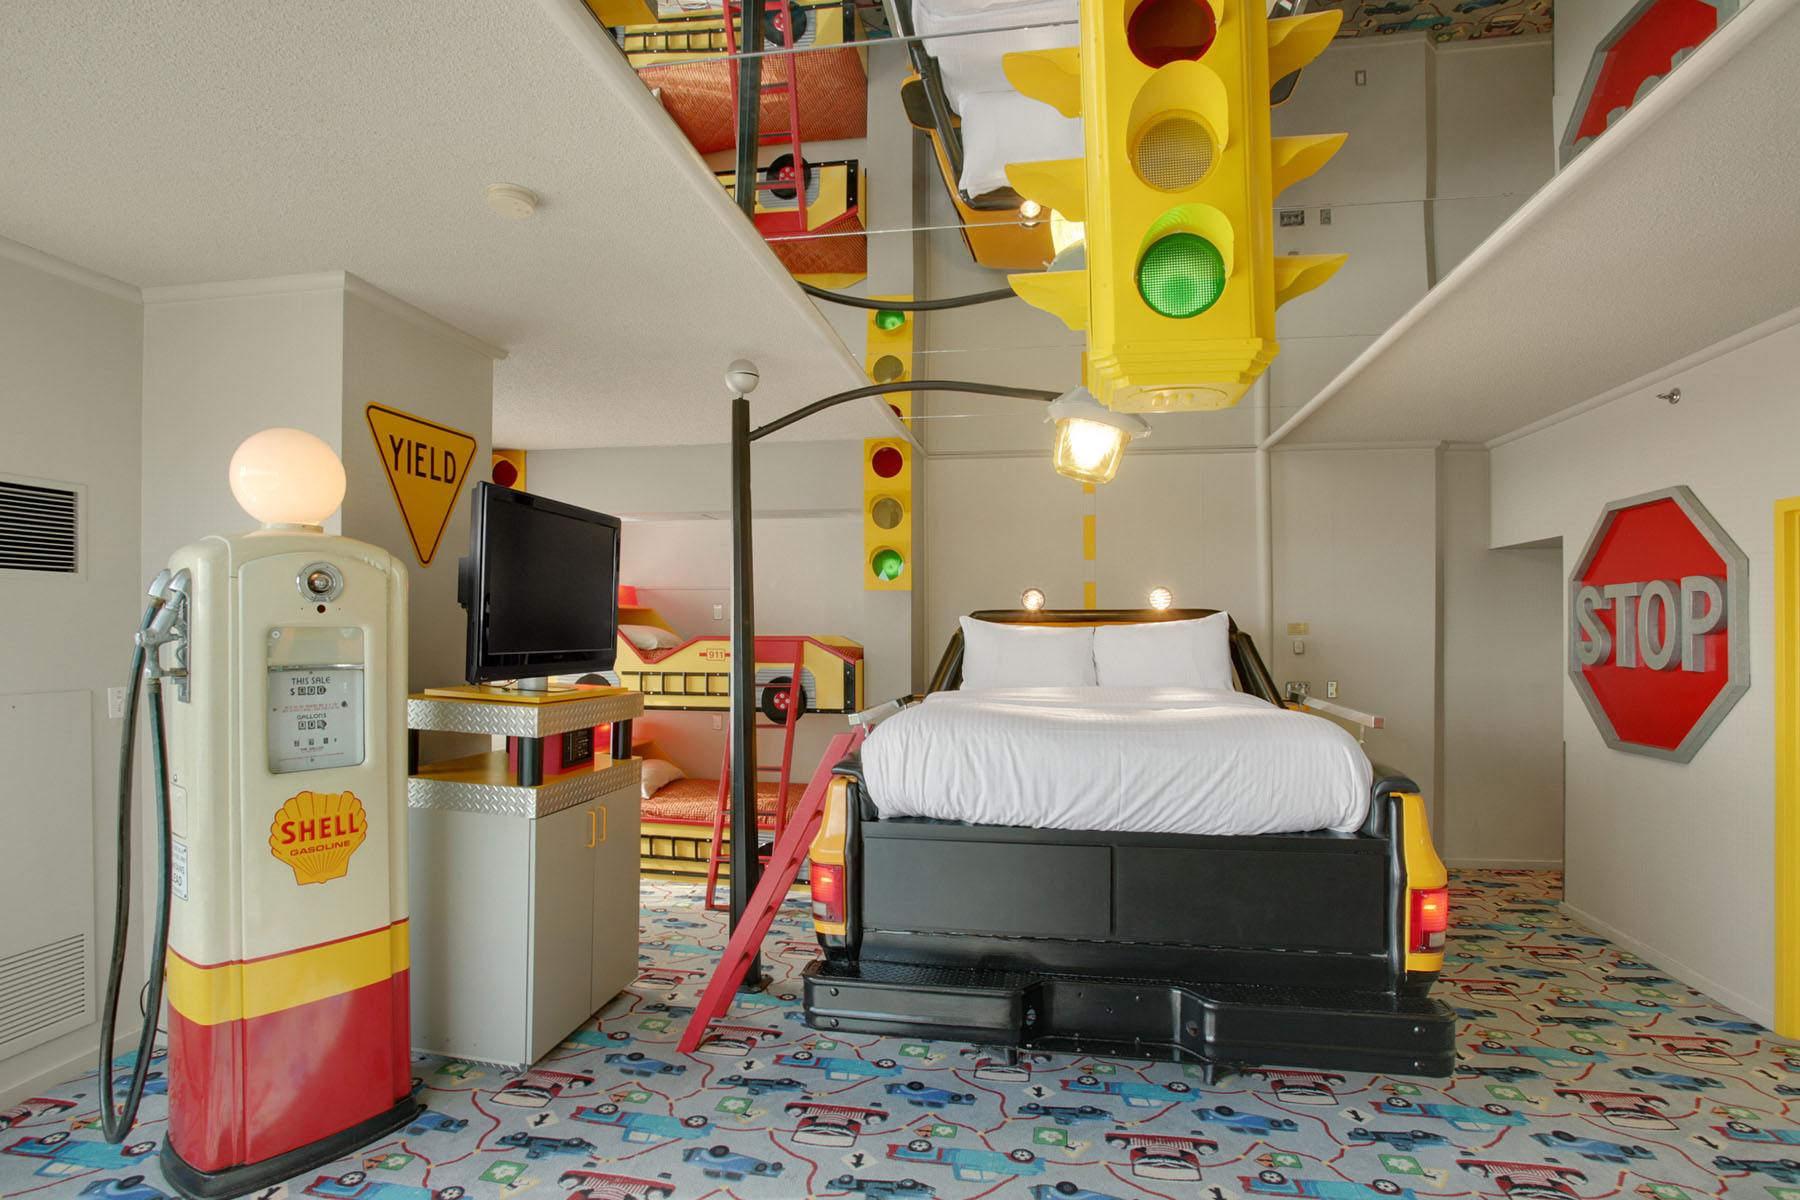 West Edmonton Mall Hotel Themed Rooms